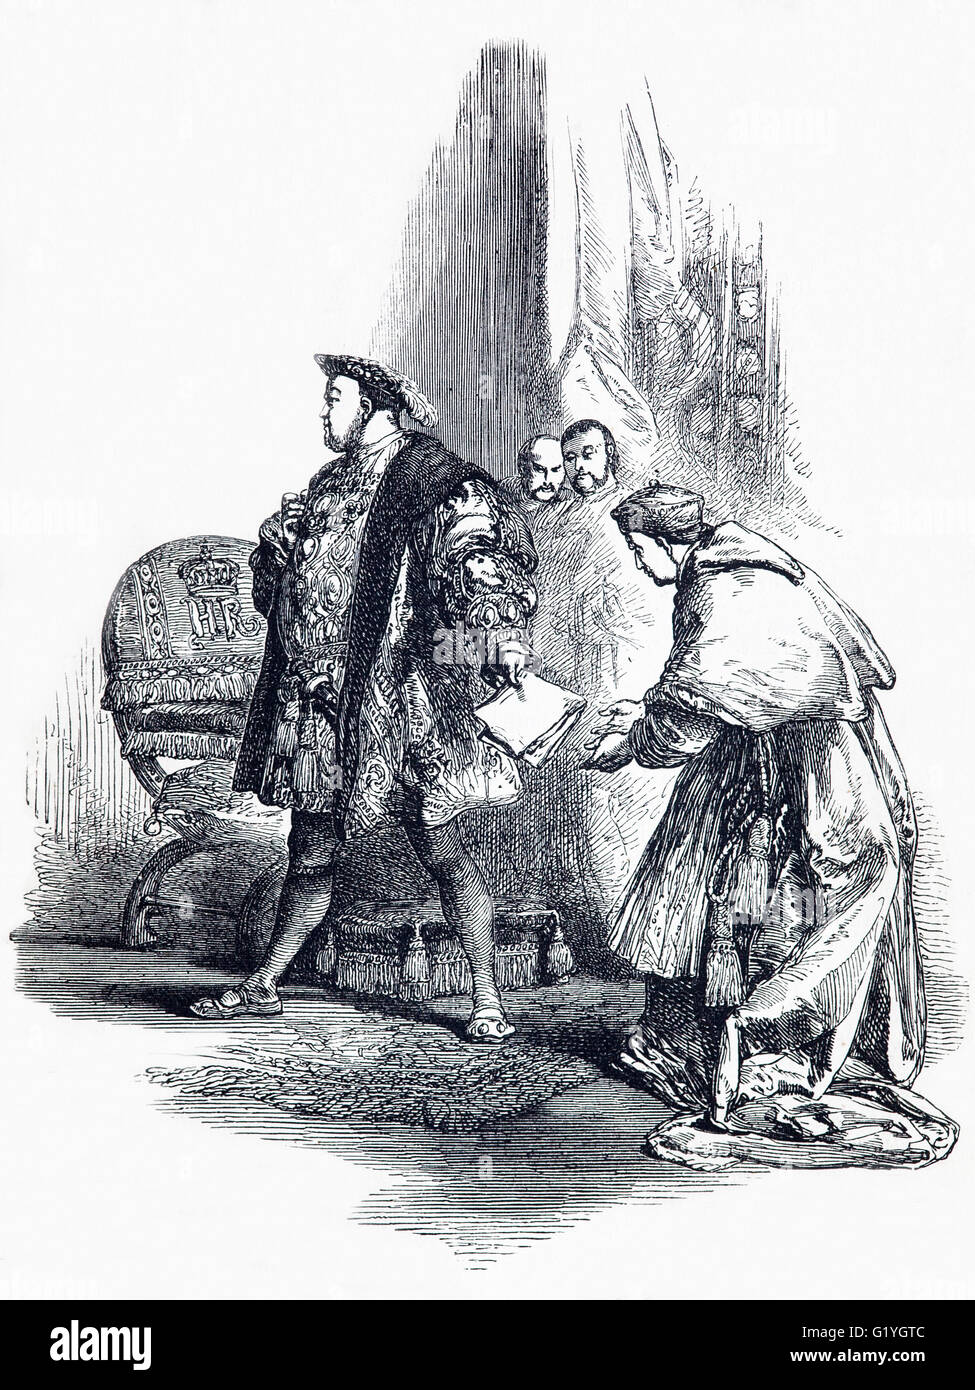 Dismissal of Cardinal Thomas Wolsey by Henry VIII in 1529 after Henry decided to seek an annulment of his marriage - Stock Image